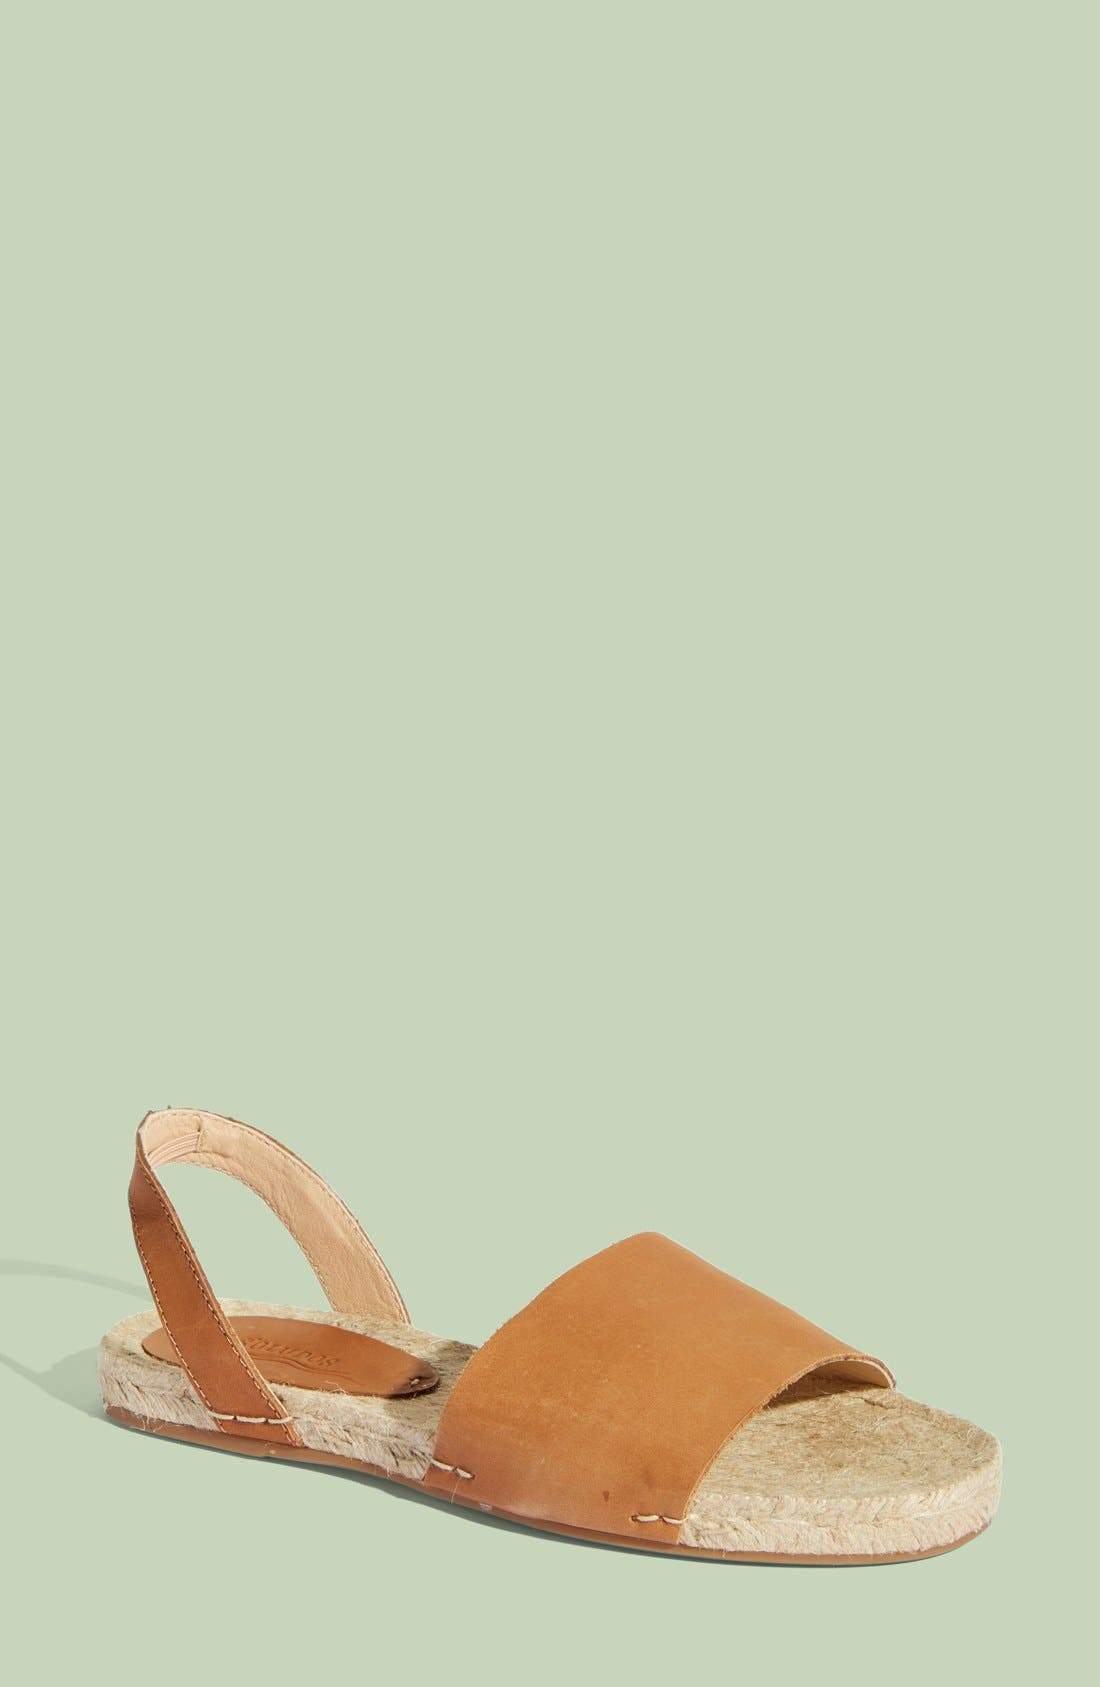 Alternate Image 1 Selected - Soludos Slingback Sandal (Women)